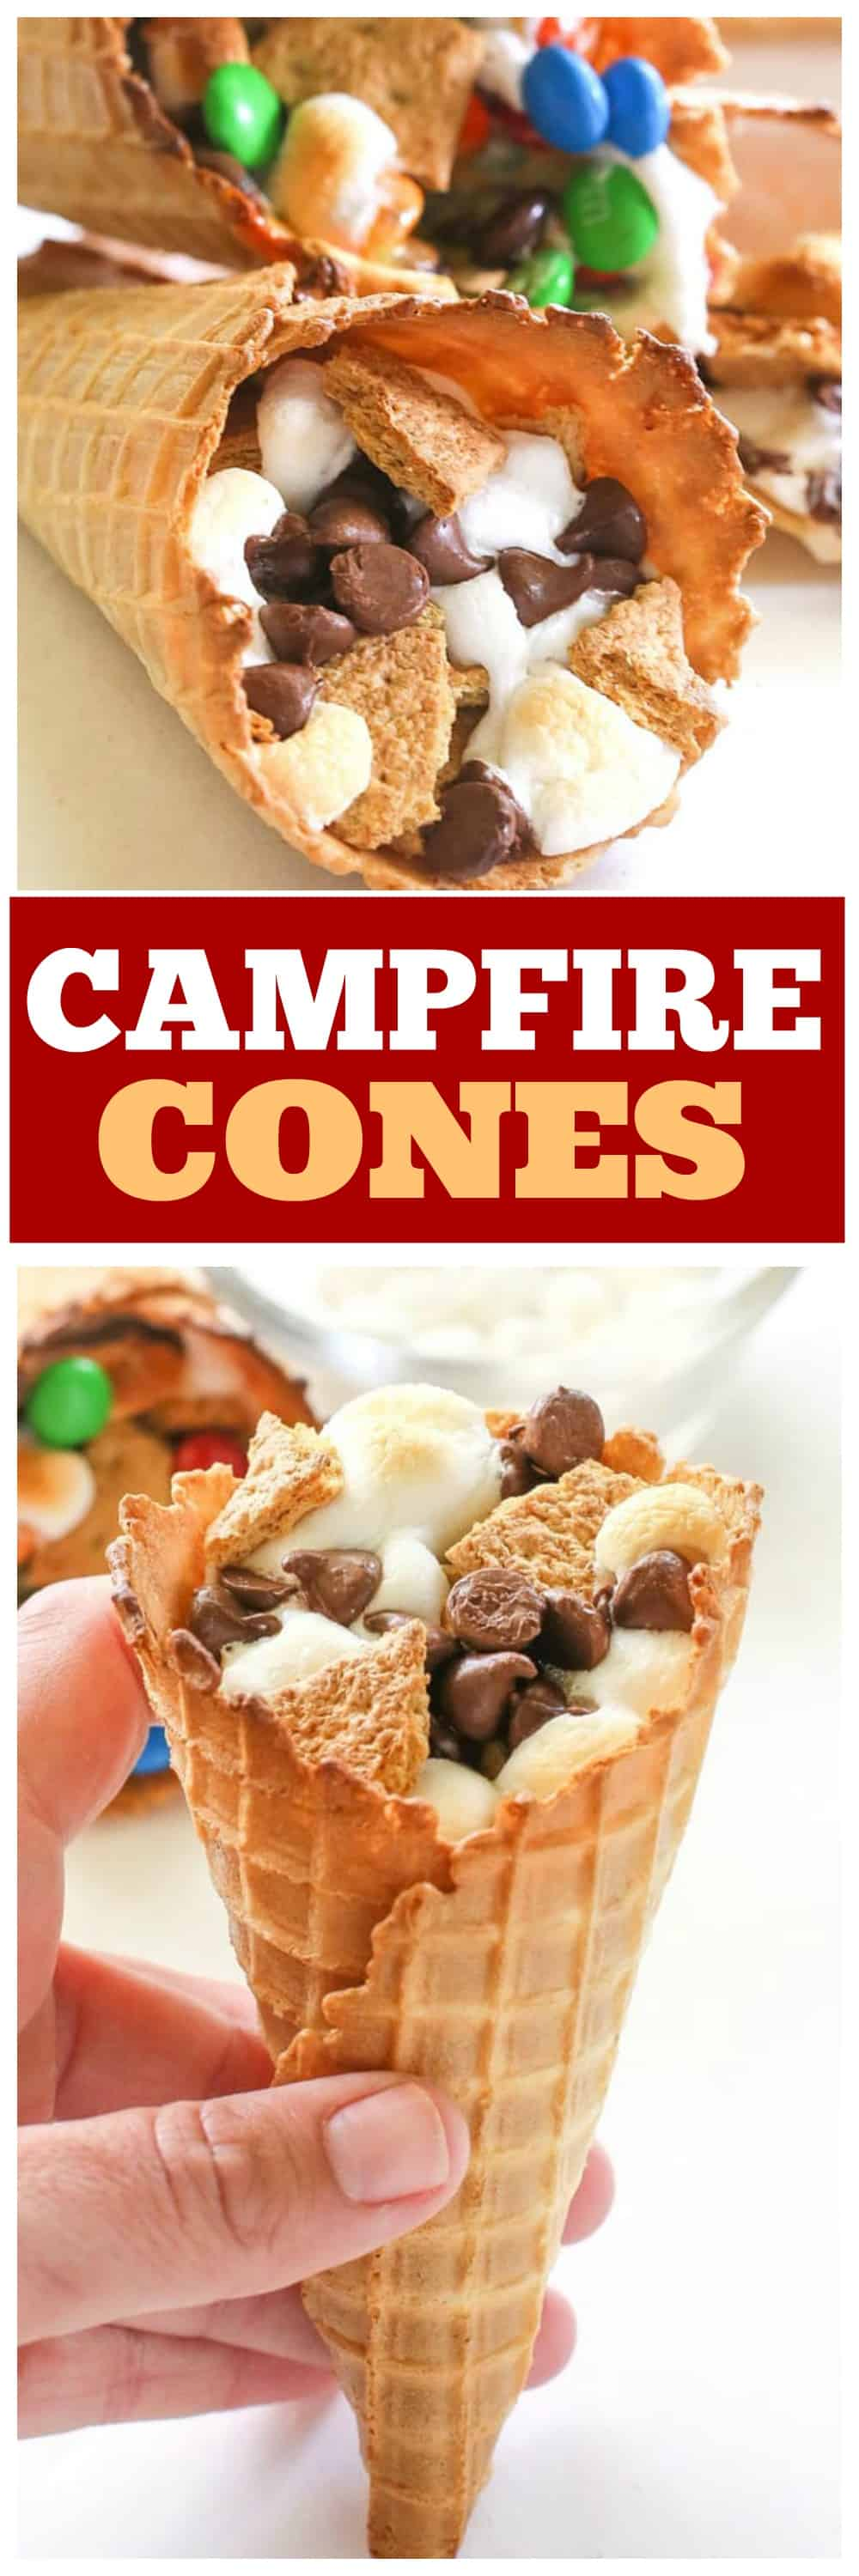 Campfire Cones - If you don't want to deal with someone poking their eye out, make your s'mores in a waffle cone, wrap it in foil, and toss it in the campfire until melted! #campfirecones #smores #dessert